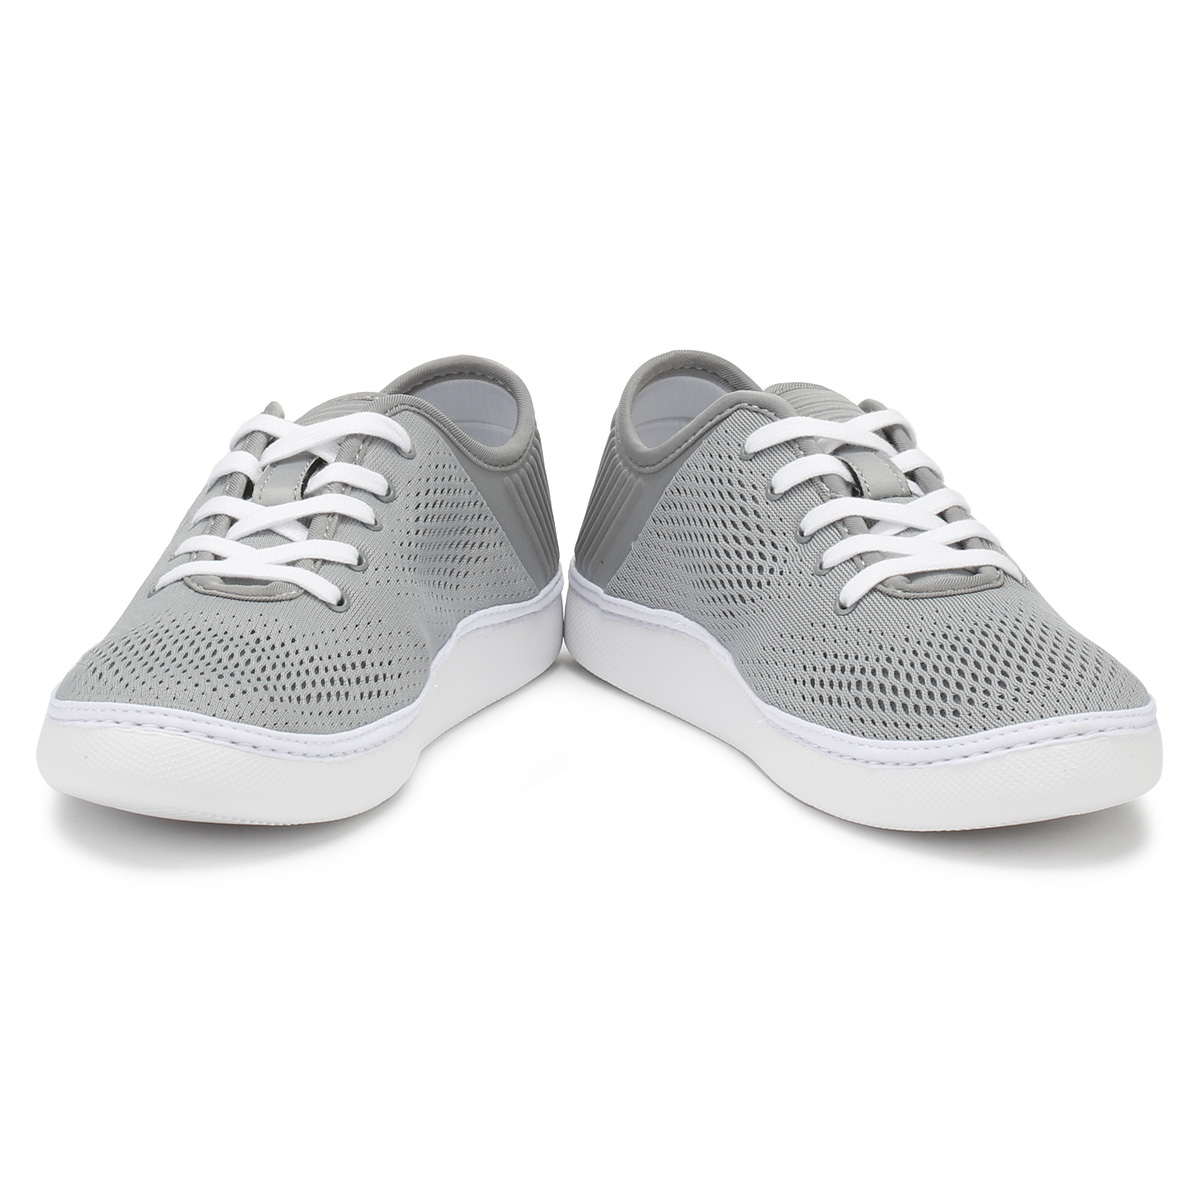 Lacoste Mens Trainers Grau & WEISS L.YDRO Lace 118 1 Schuhes Sport Casual Lace Up Schuhes 1 44c18a